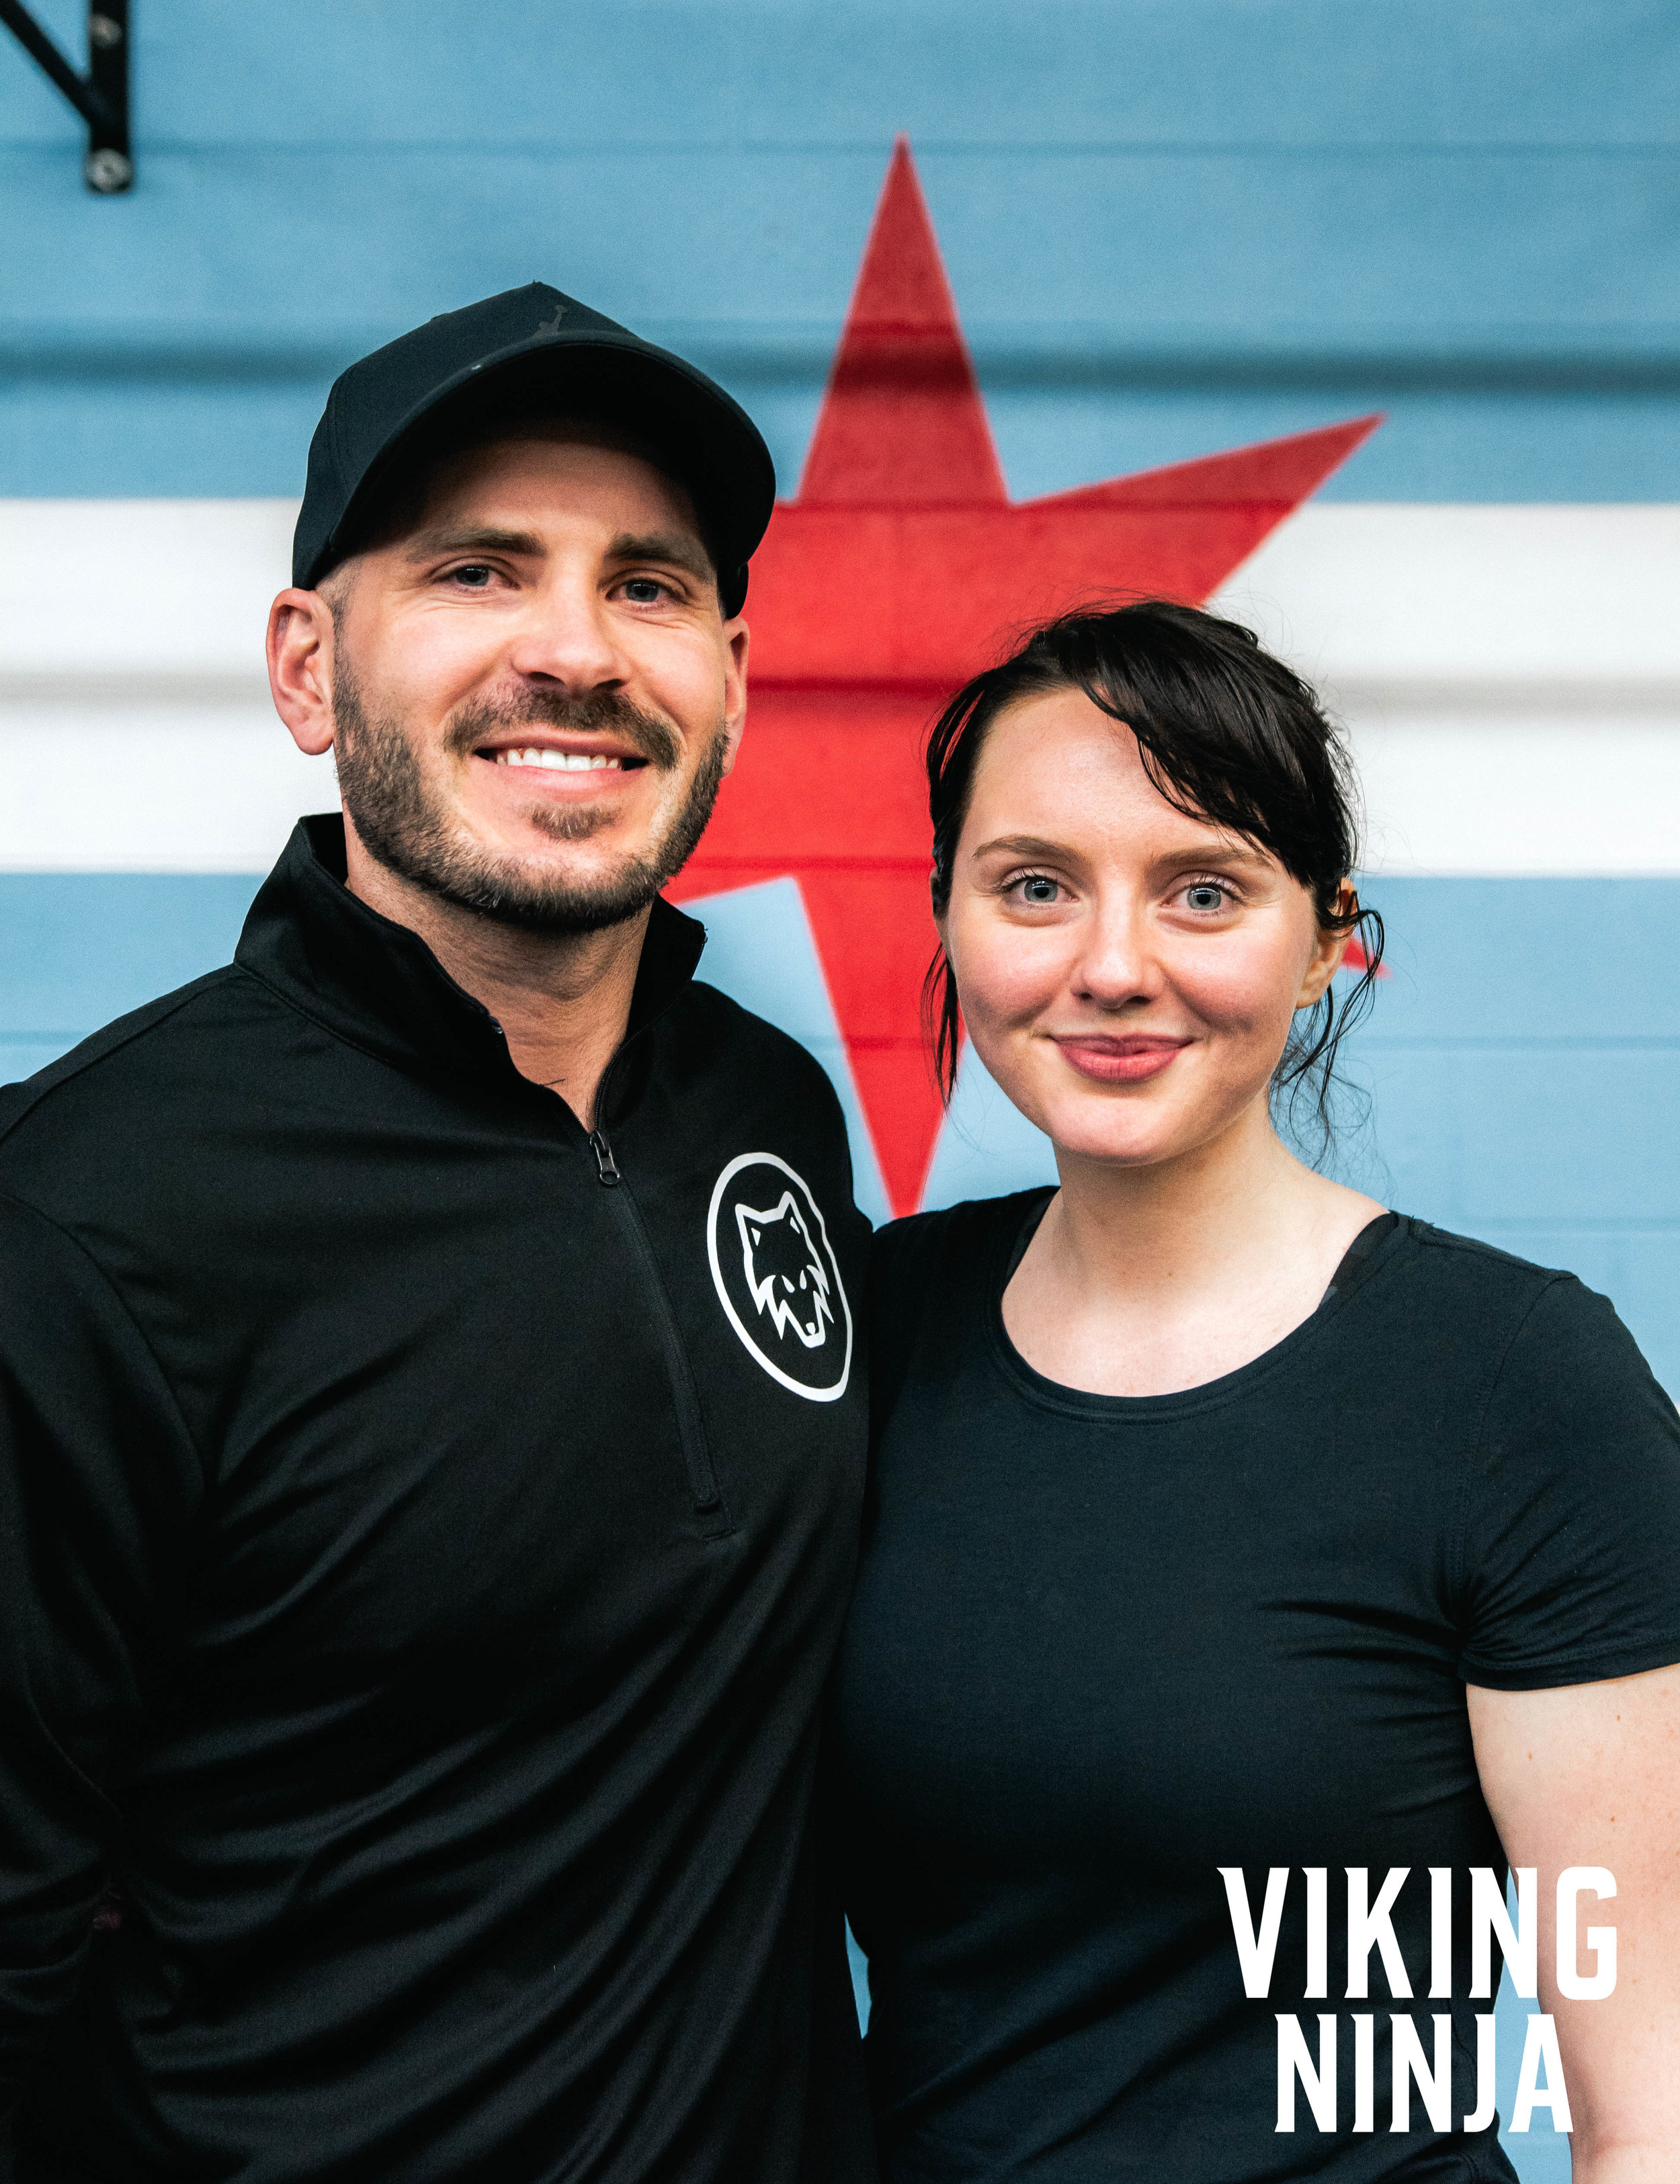 Phillip Carlson and Macaila Britton attending the VKNJA Certification in Chicago at Midwest Strength and Performance